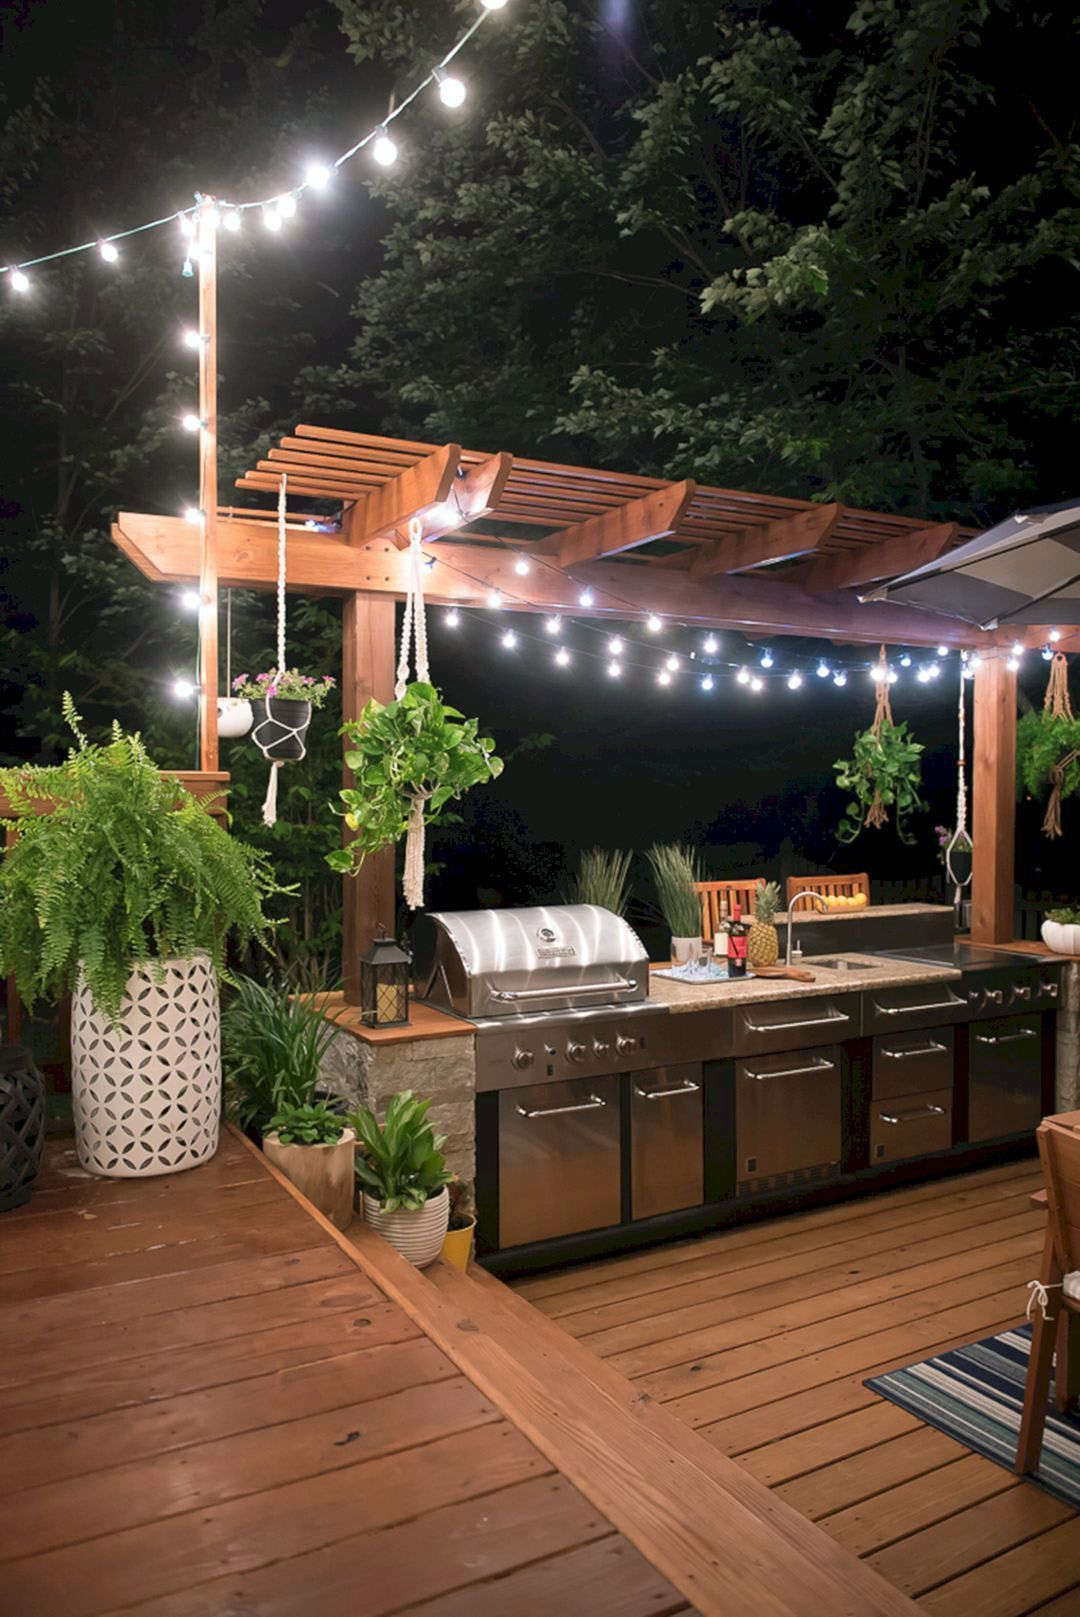 Fashionable Outdoor Kitchen Designs For Small Spaces Philippines You Ll Love Outdoor Kitchen Design Outdoor Kitchen Design Layout Outdoor Kitchen Decor